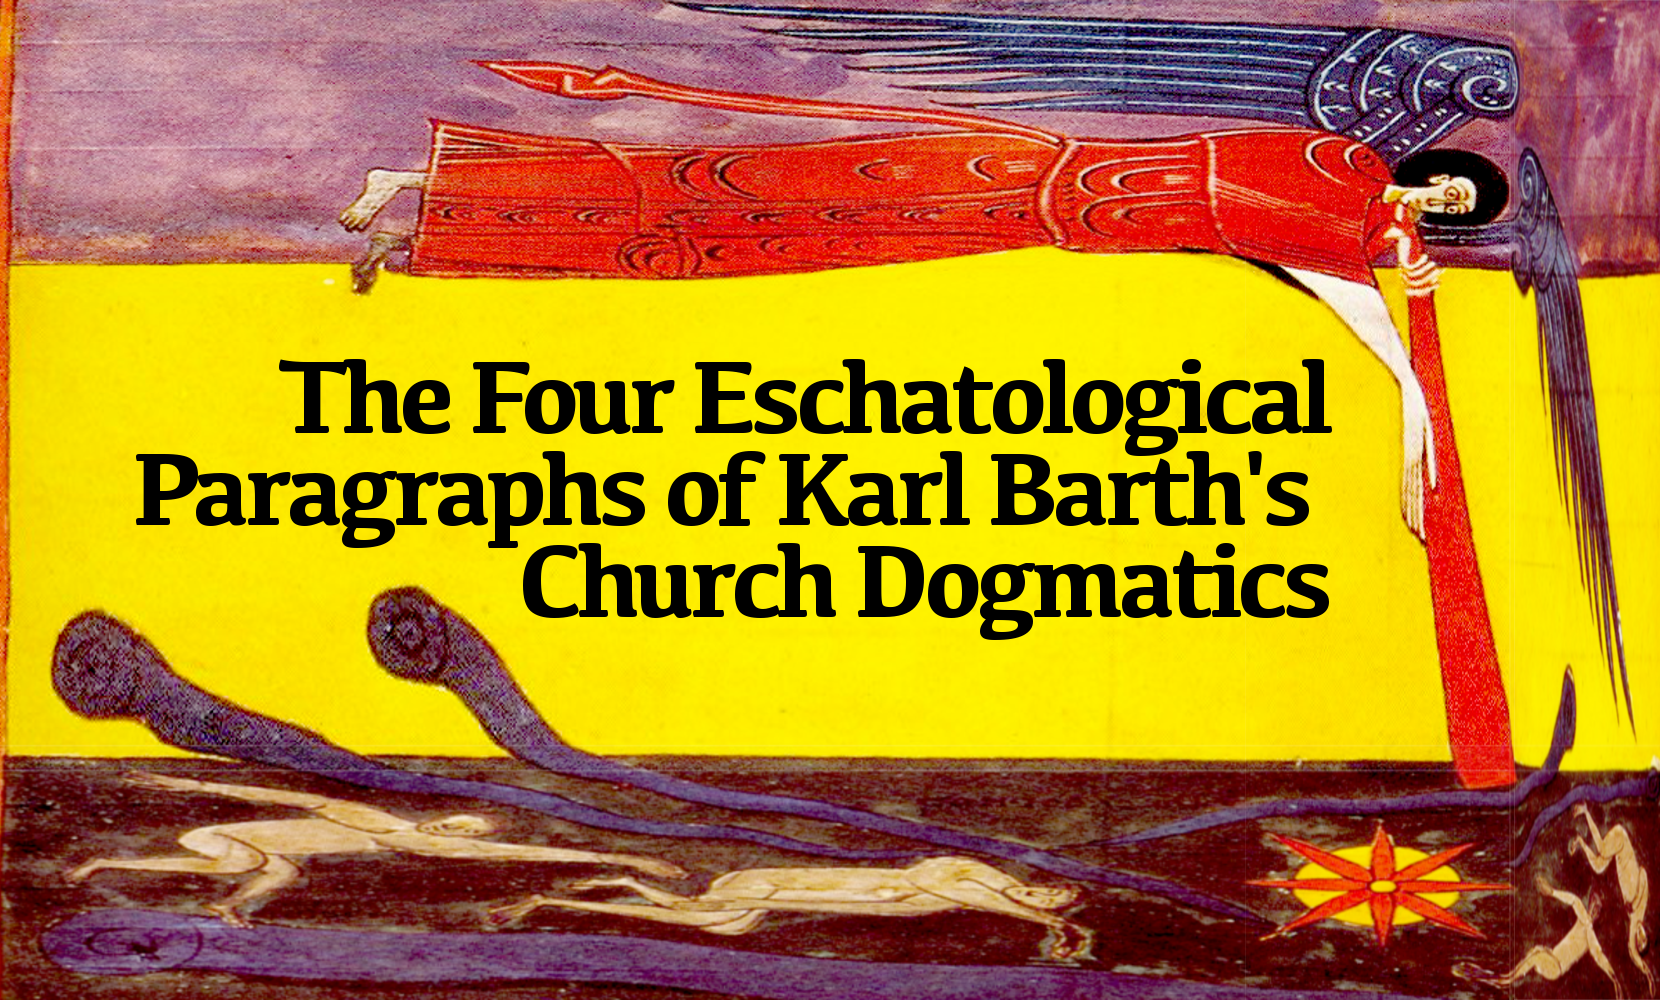 the-four-eschatological-paragraphs-of-karl-barth-church-dogmatics